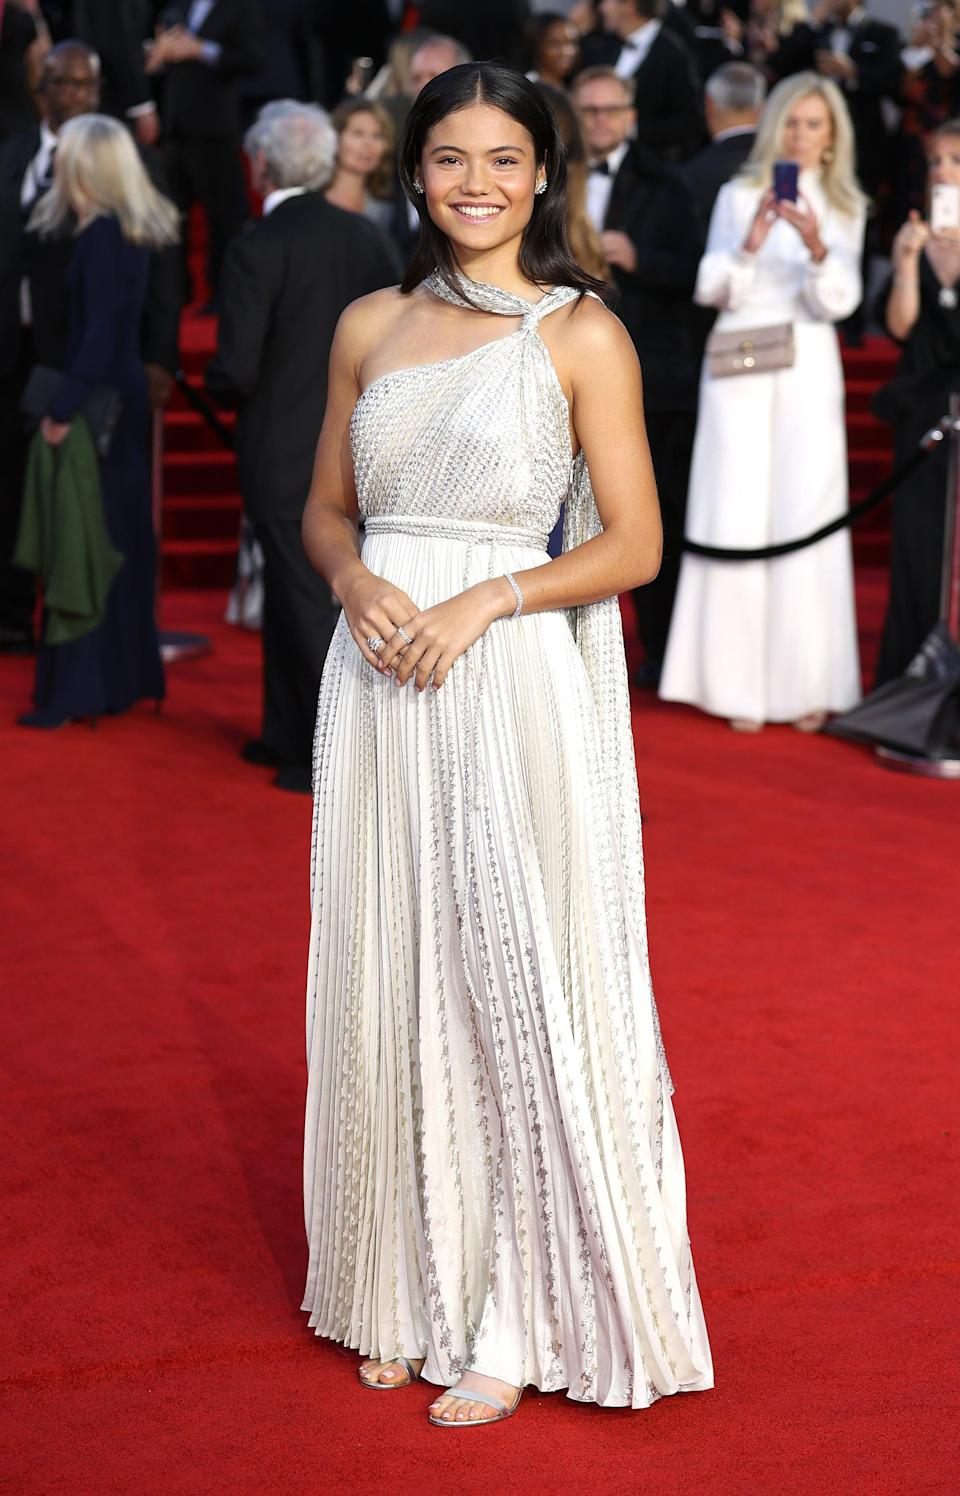 <p>Raducanu wore a white, one-shoulder, Grecian-inspired dress from Dior's Resort 2022 collection. Her jewelry - including tennis bracelet, earrings, and rings - was from Tiffany &amp; Co. </p>